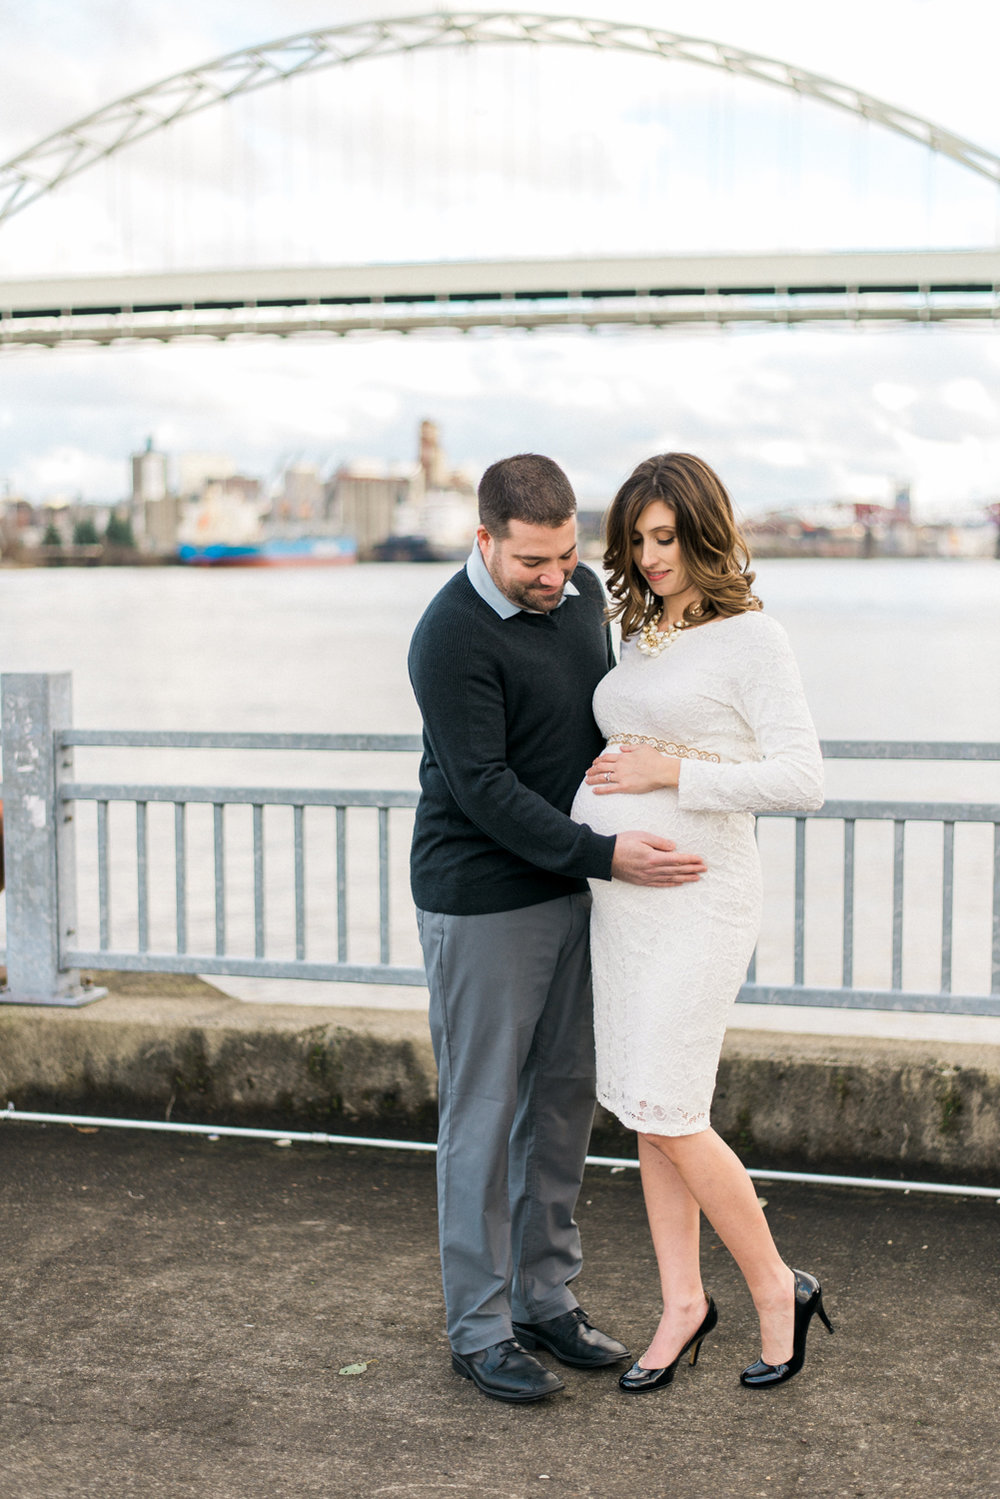 portland-maternity-photographer-fremont-bridge-shelley-marie-photo-6